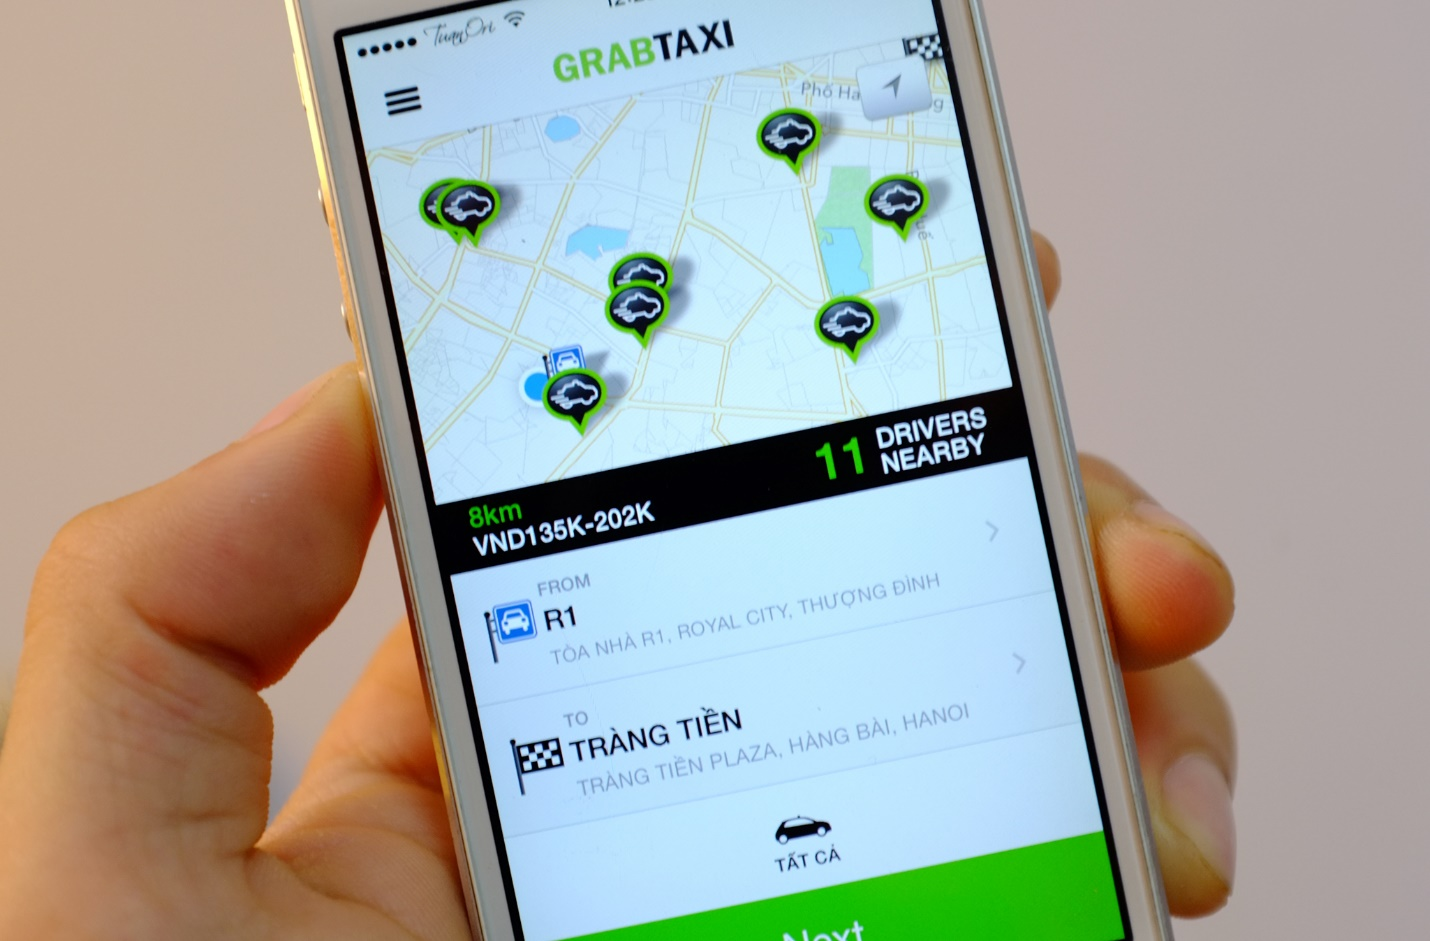 Grab taxi- a useful app for visitors when choosing cheap taxis in Hanoi